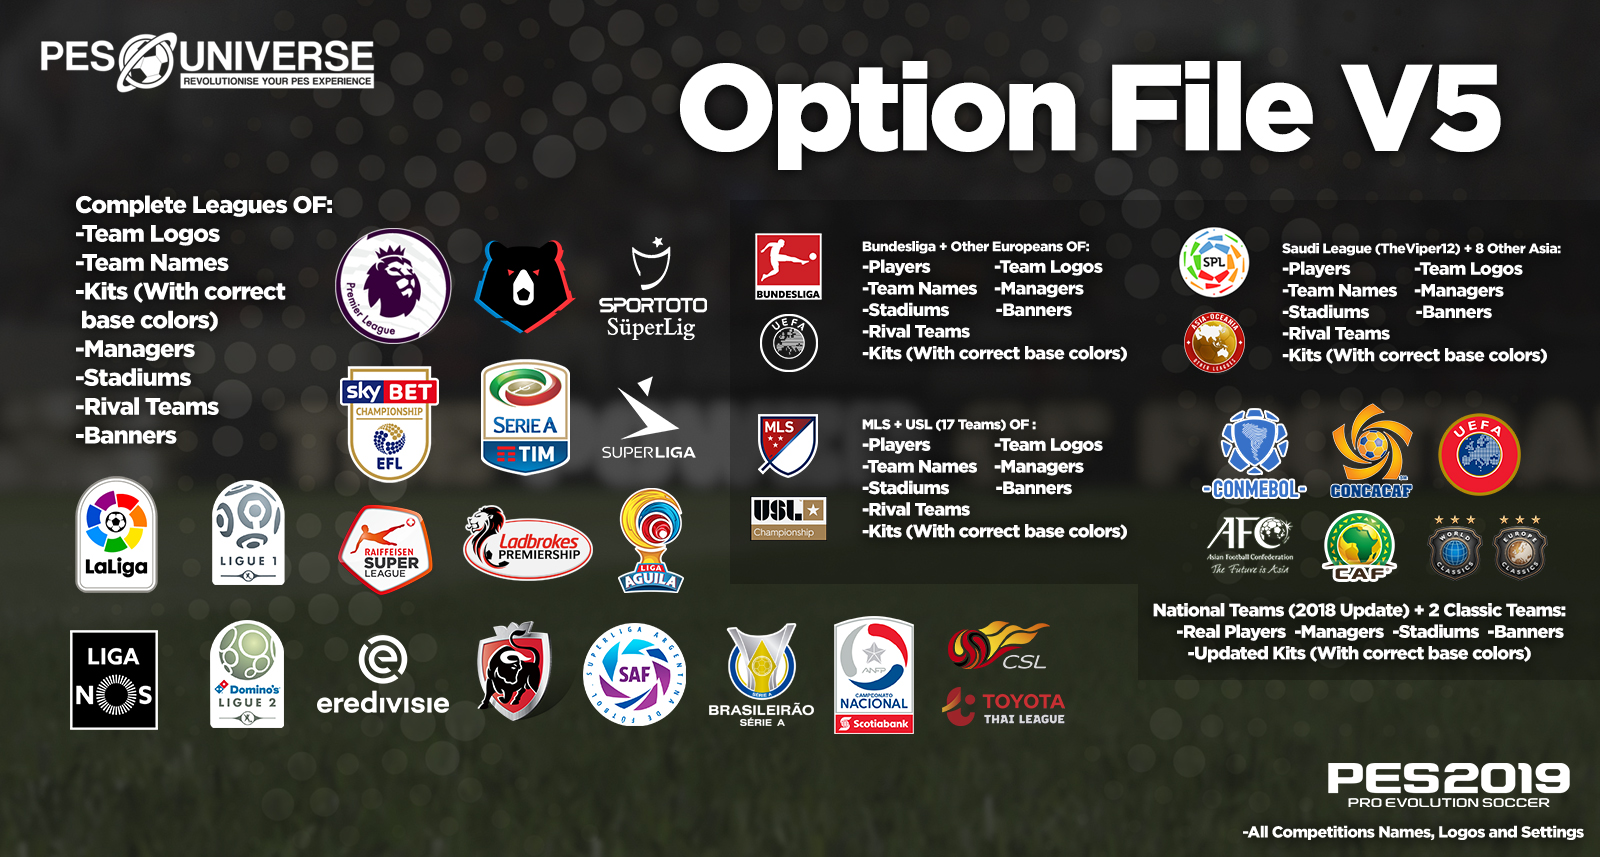 PES 2019 PS4 PES Universe Option File v5 Season 2018/2019